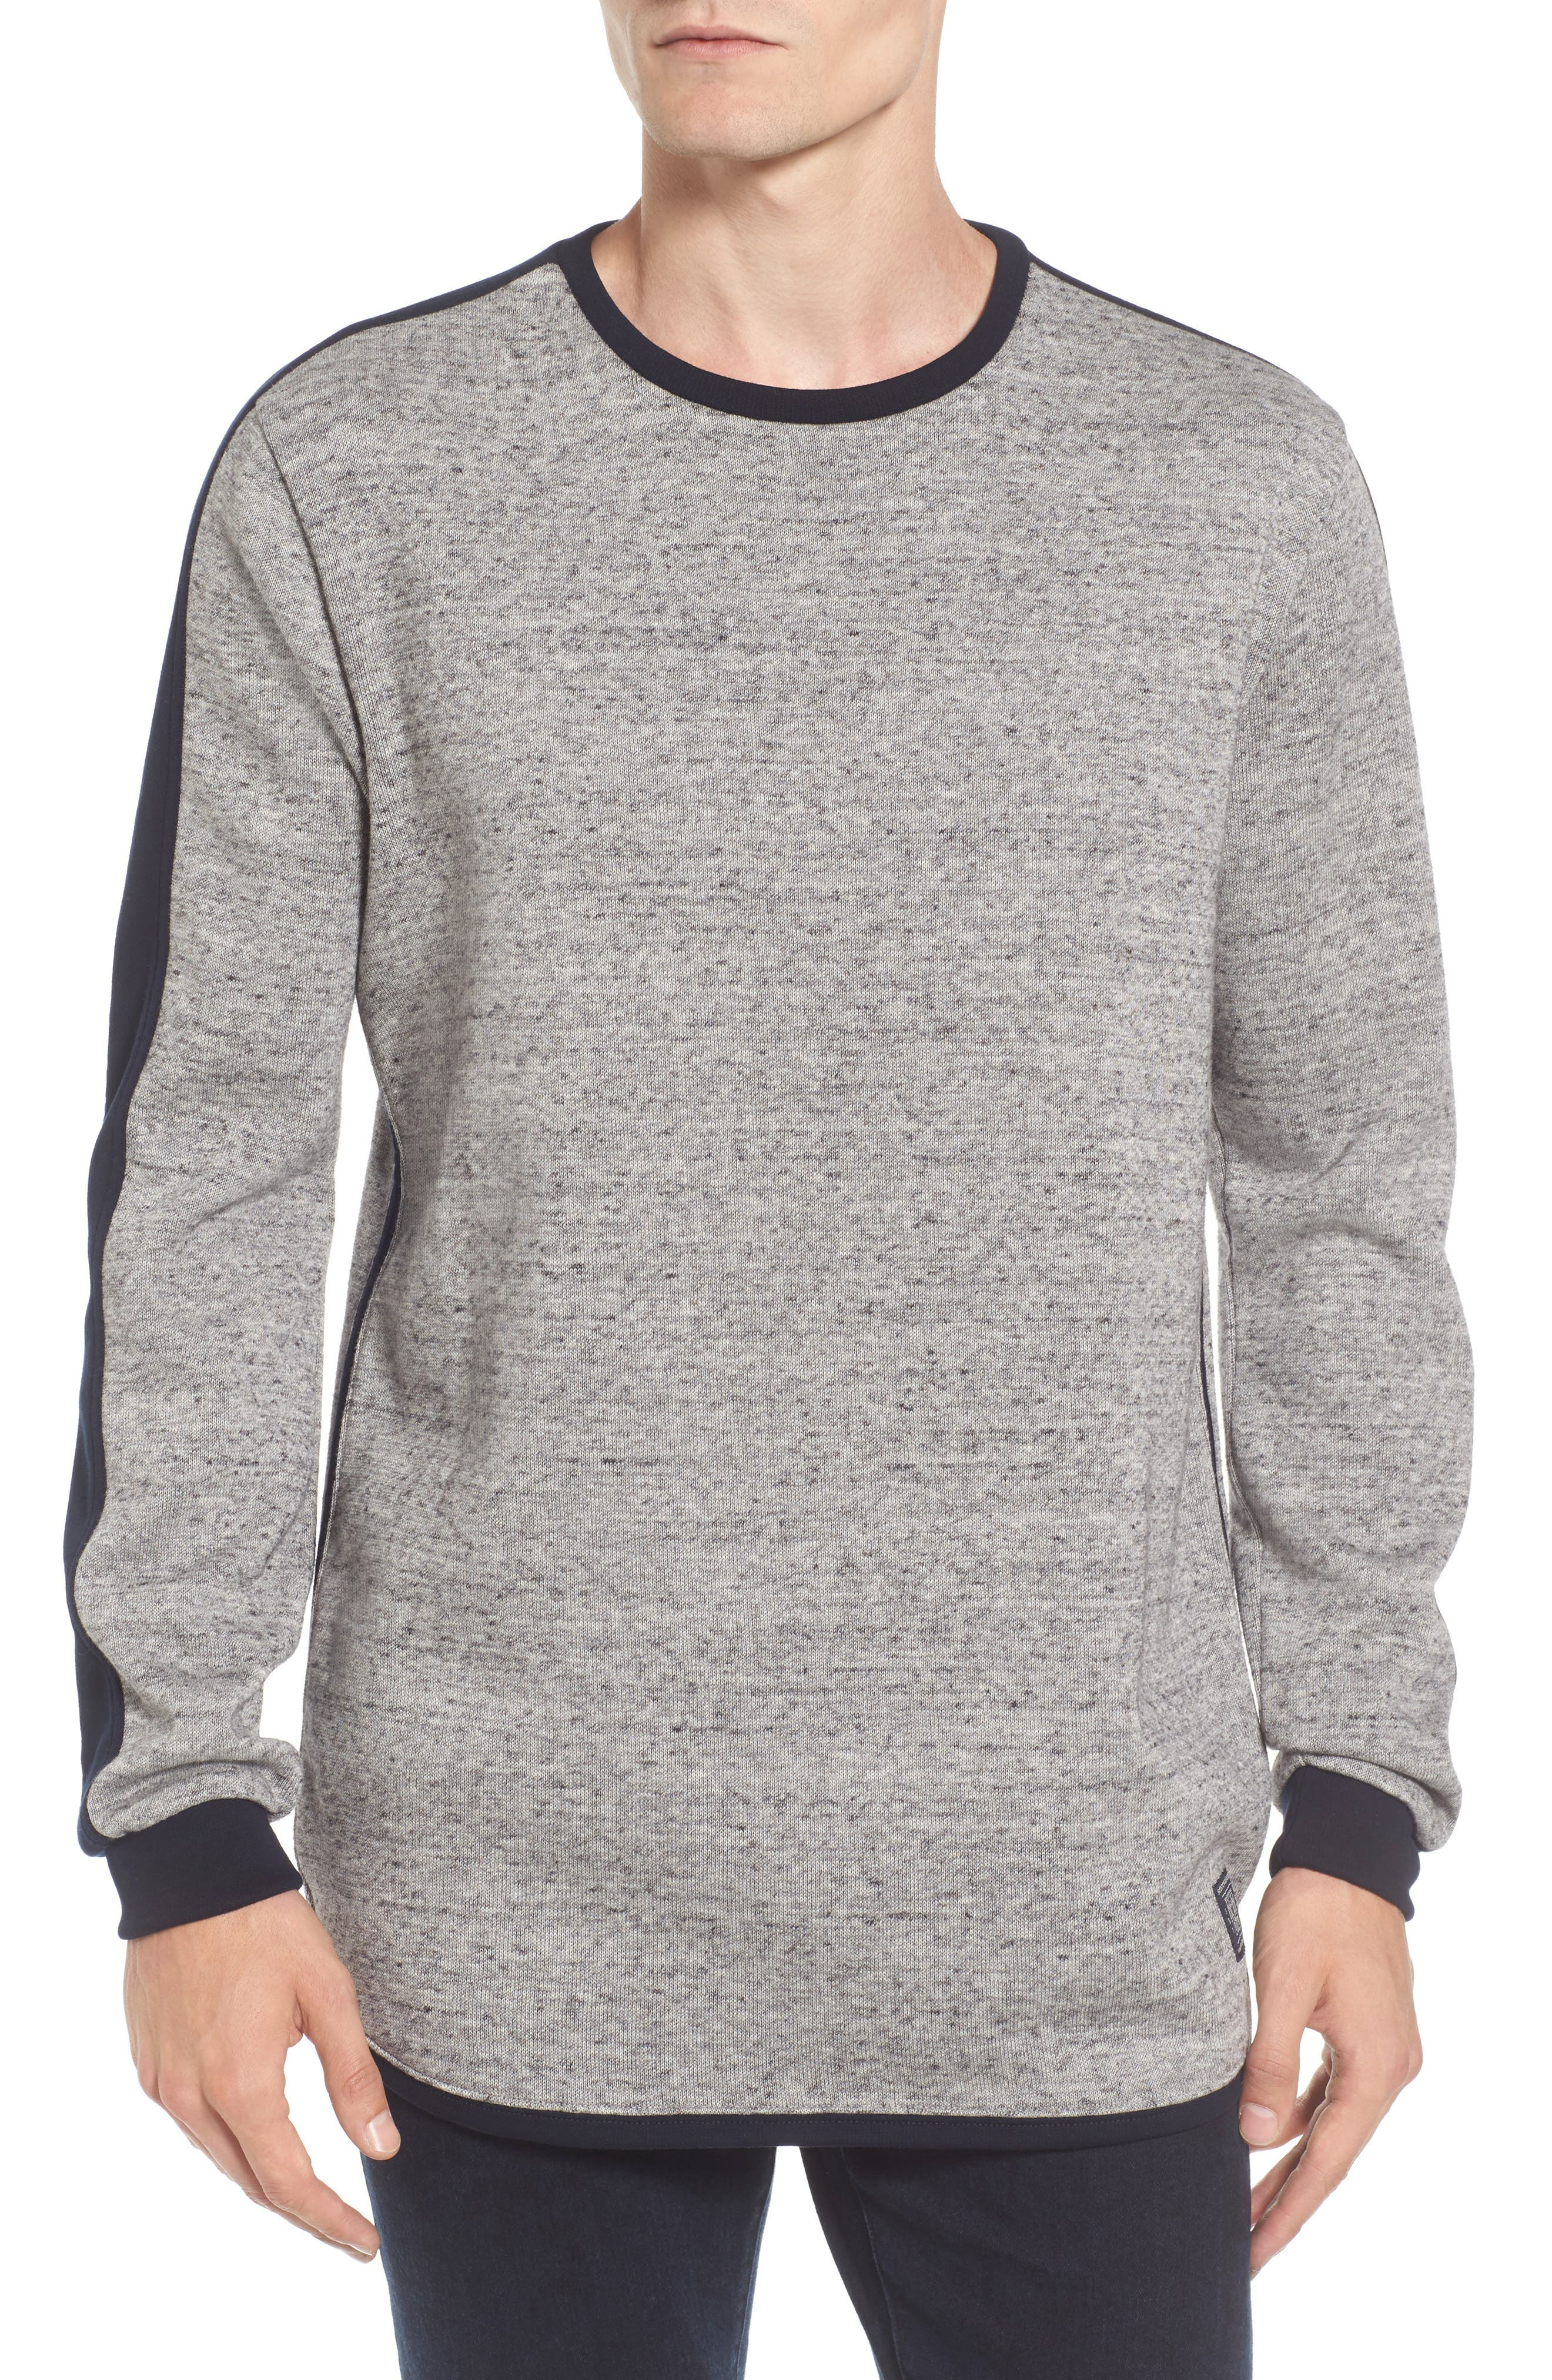 Panel Sweatshirt,                             Main thumbnail 1, color,                             030